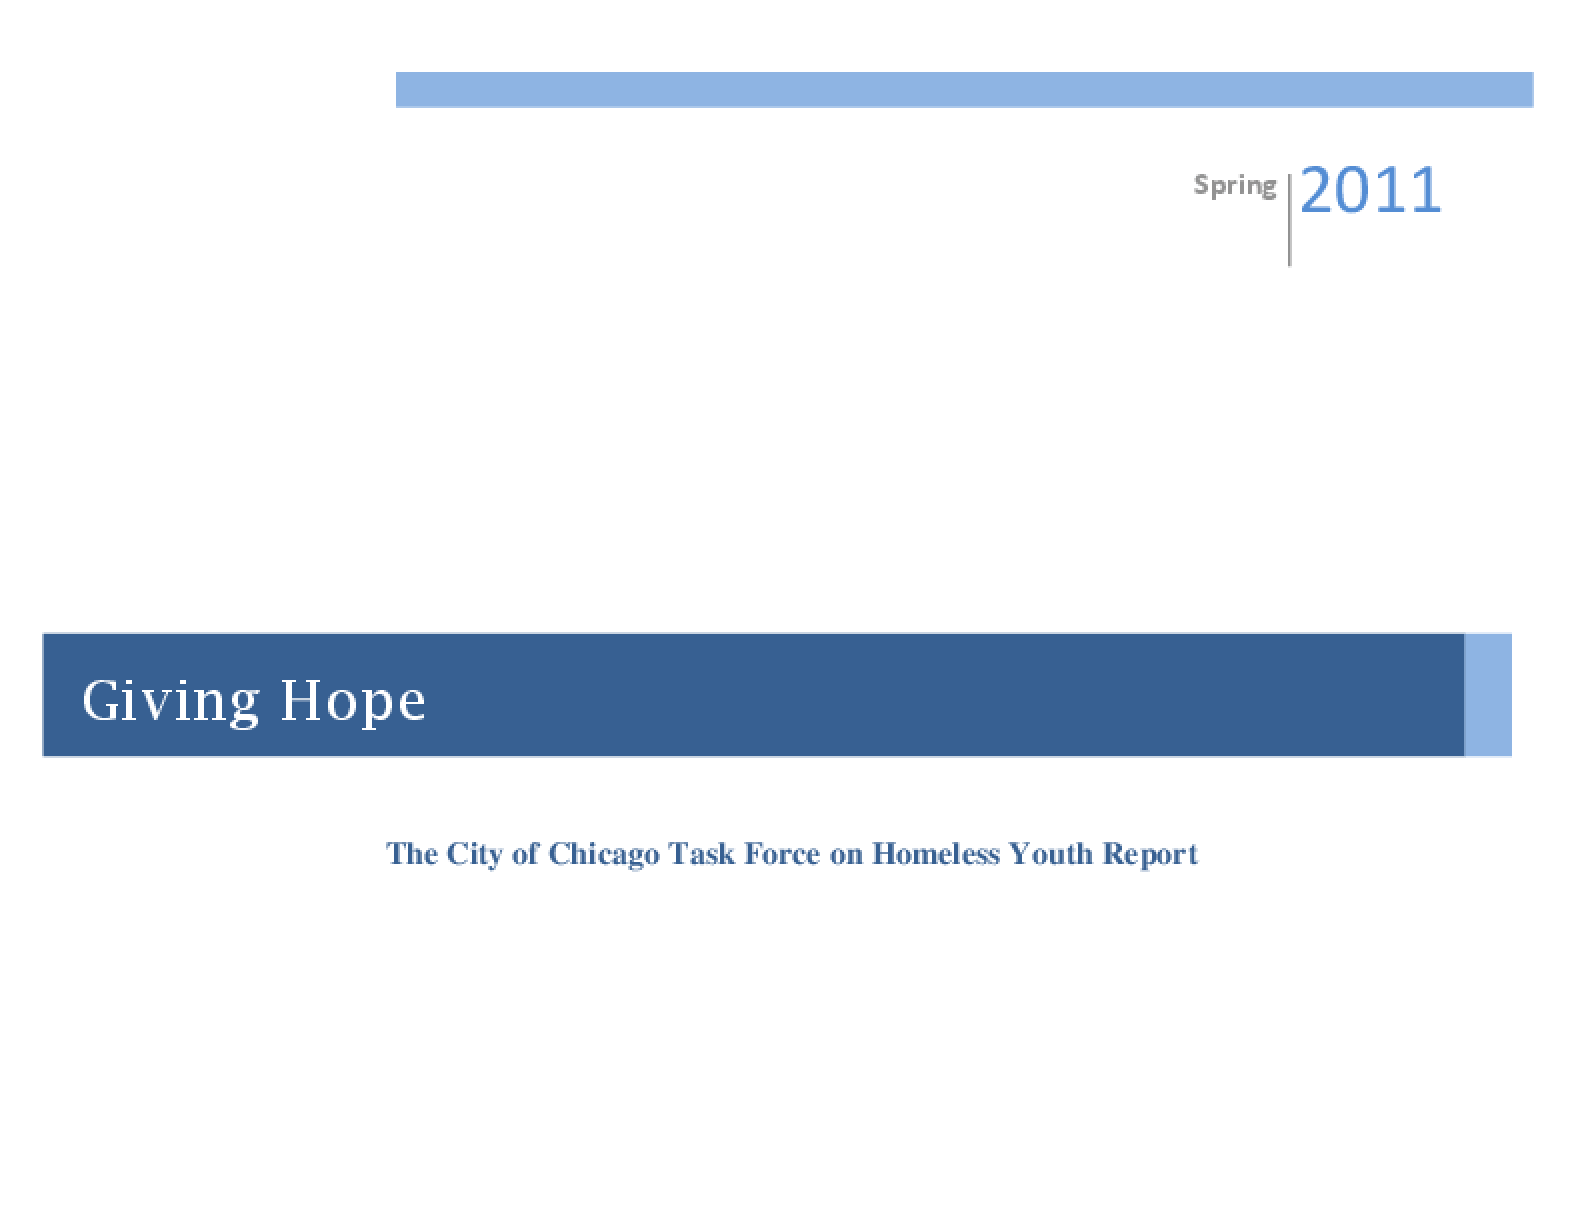 Giving Hope: The City of Chicago Task Force on Homeless Youth Report